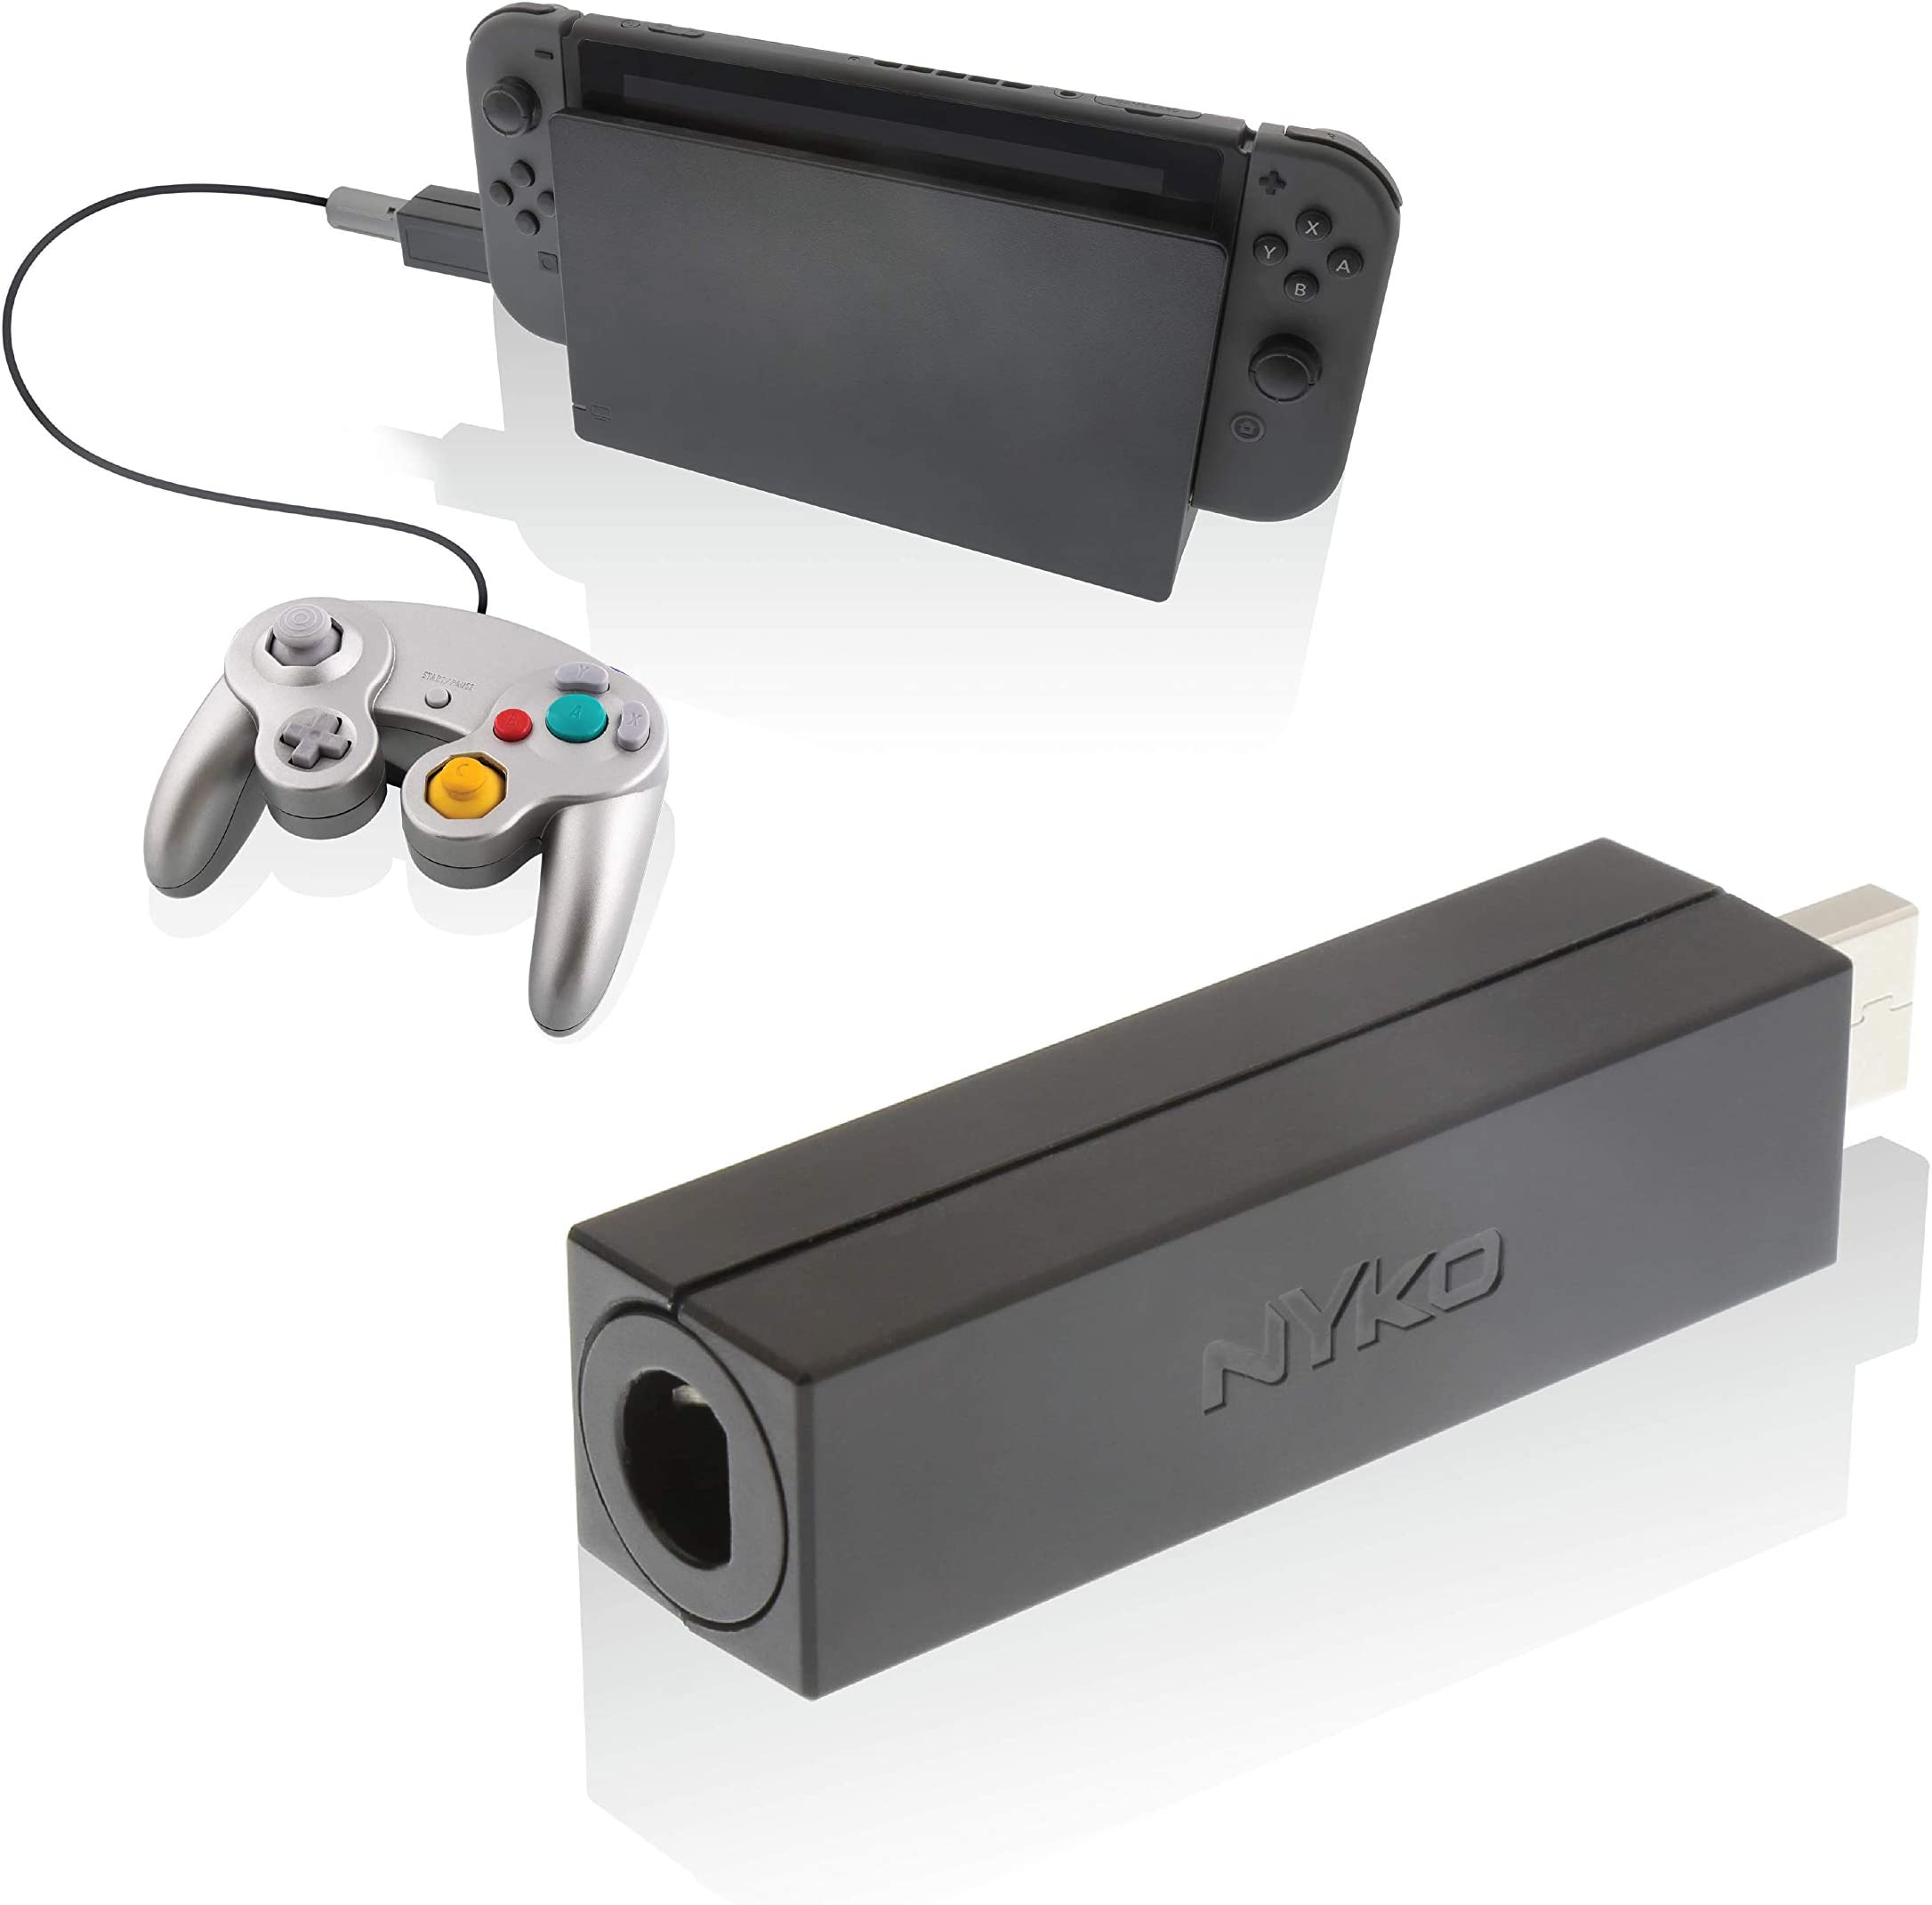 nyko controller driver for pc